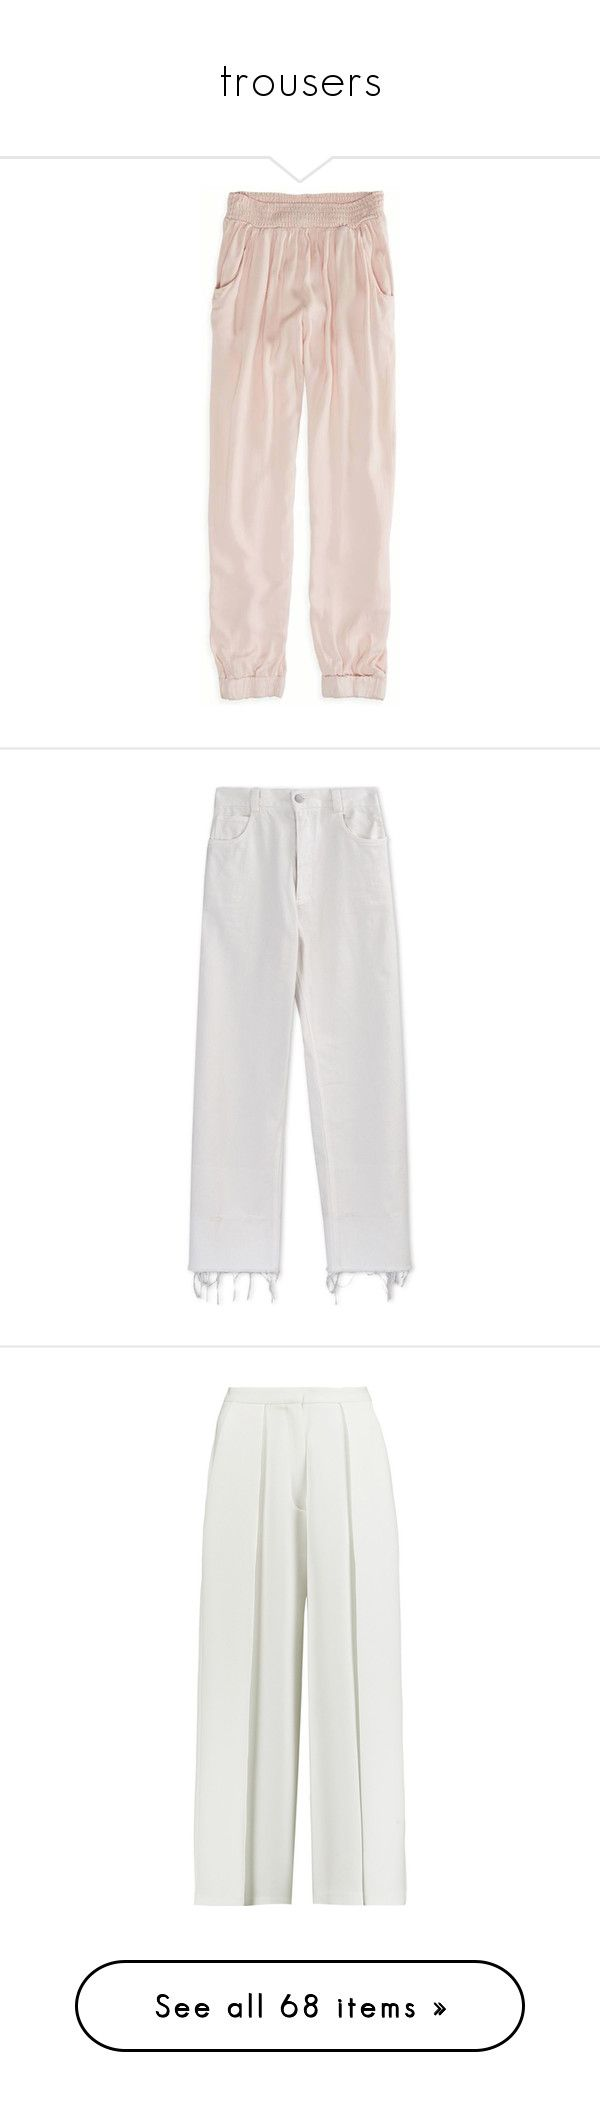 """""""trousers"""" by rg-amini ❤ liked on Polyvore featuring pants, bottoms, pajamas, pantalones, cream, saggy pants, american eagle outfitters pants, jersey pants, pink jersey and cuffed pants"""